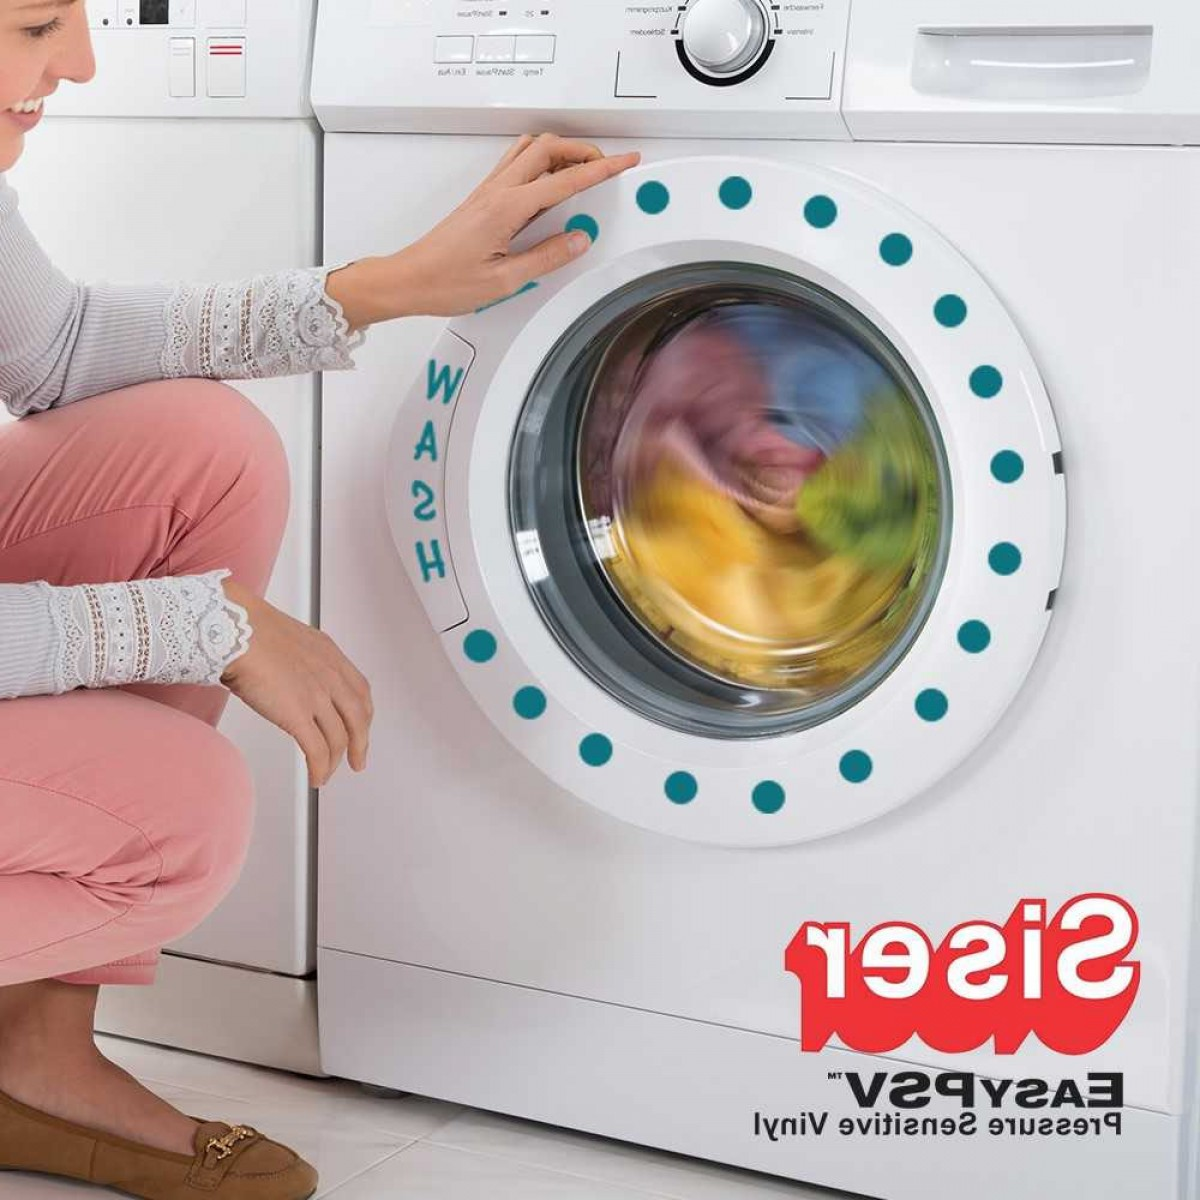 Washer Machine Vector Decal: Siser Easy Psv Removable Pressure Sensitive Vinyl Inch By The Yard